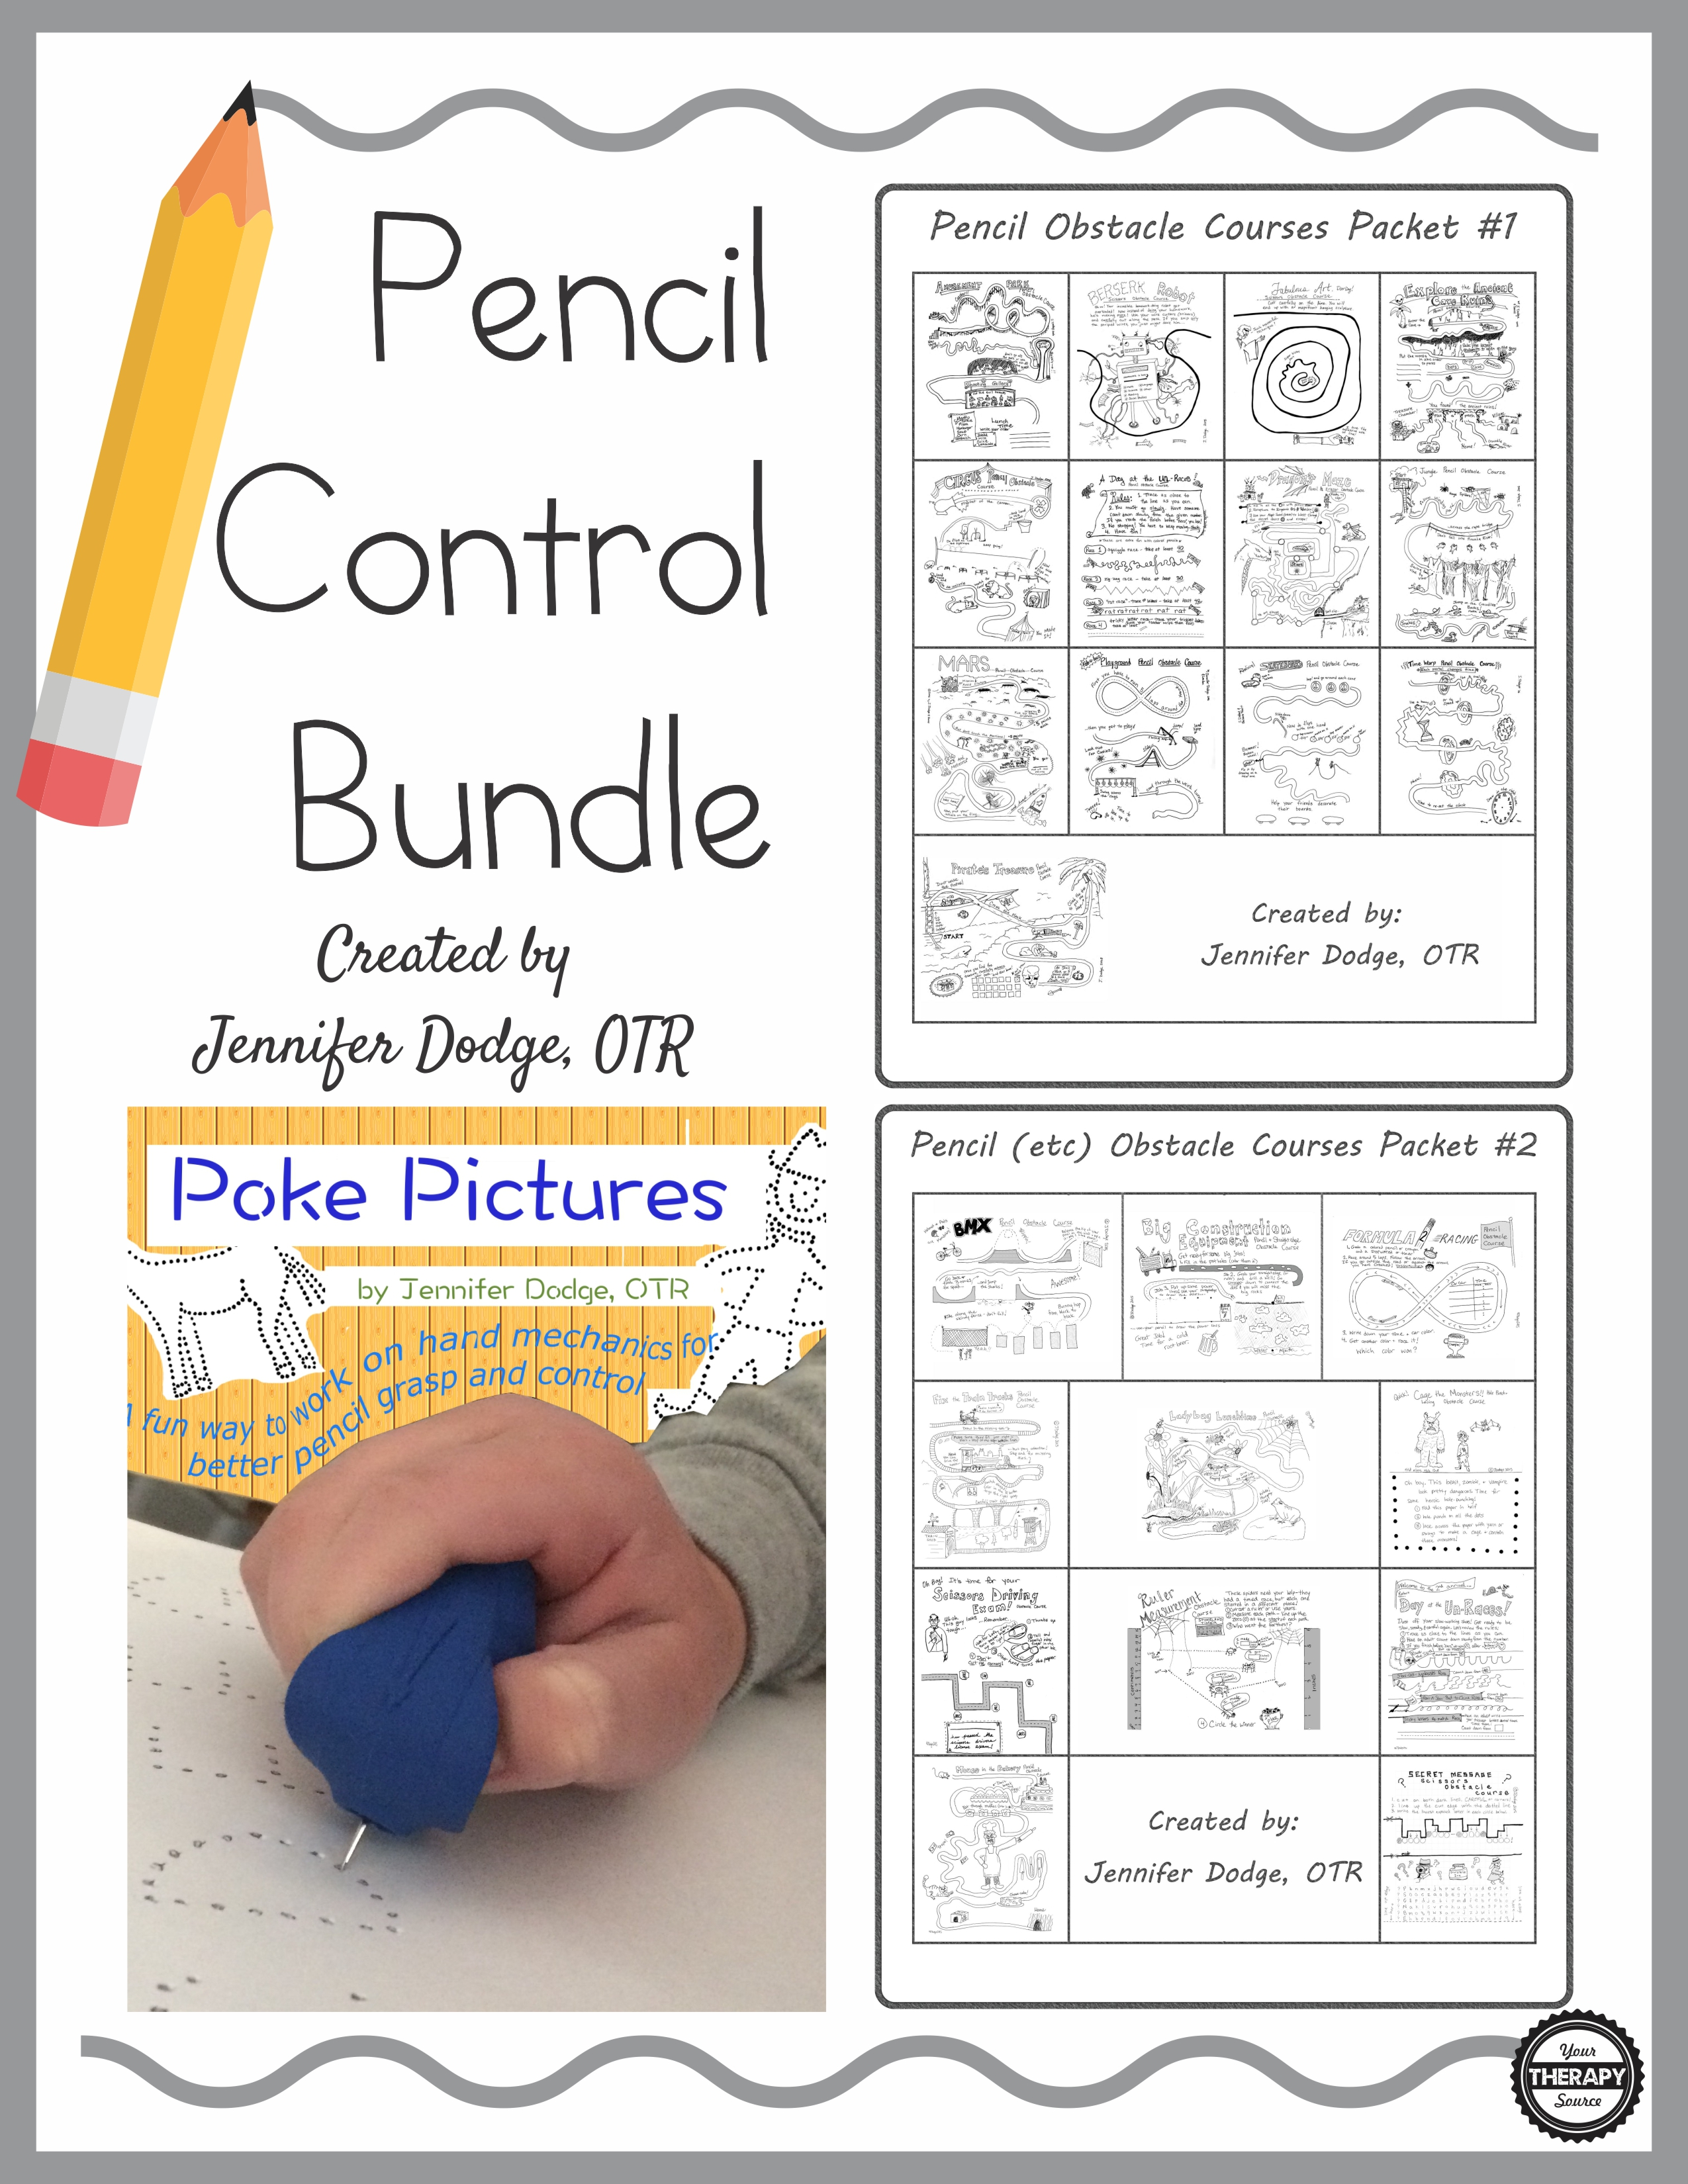 Pencil Control Bundle created by Jennifer Dodge OTR to encourage pencil grasp and control